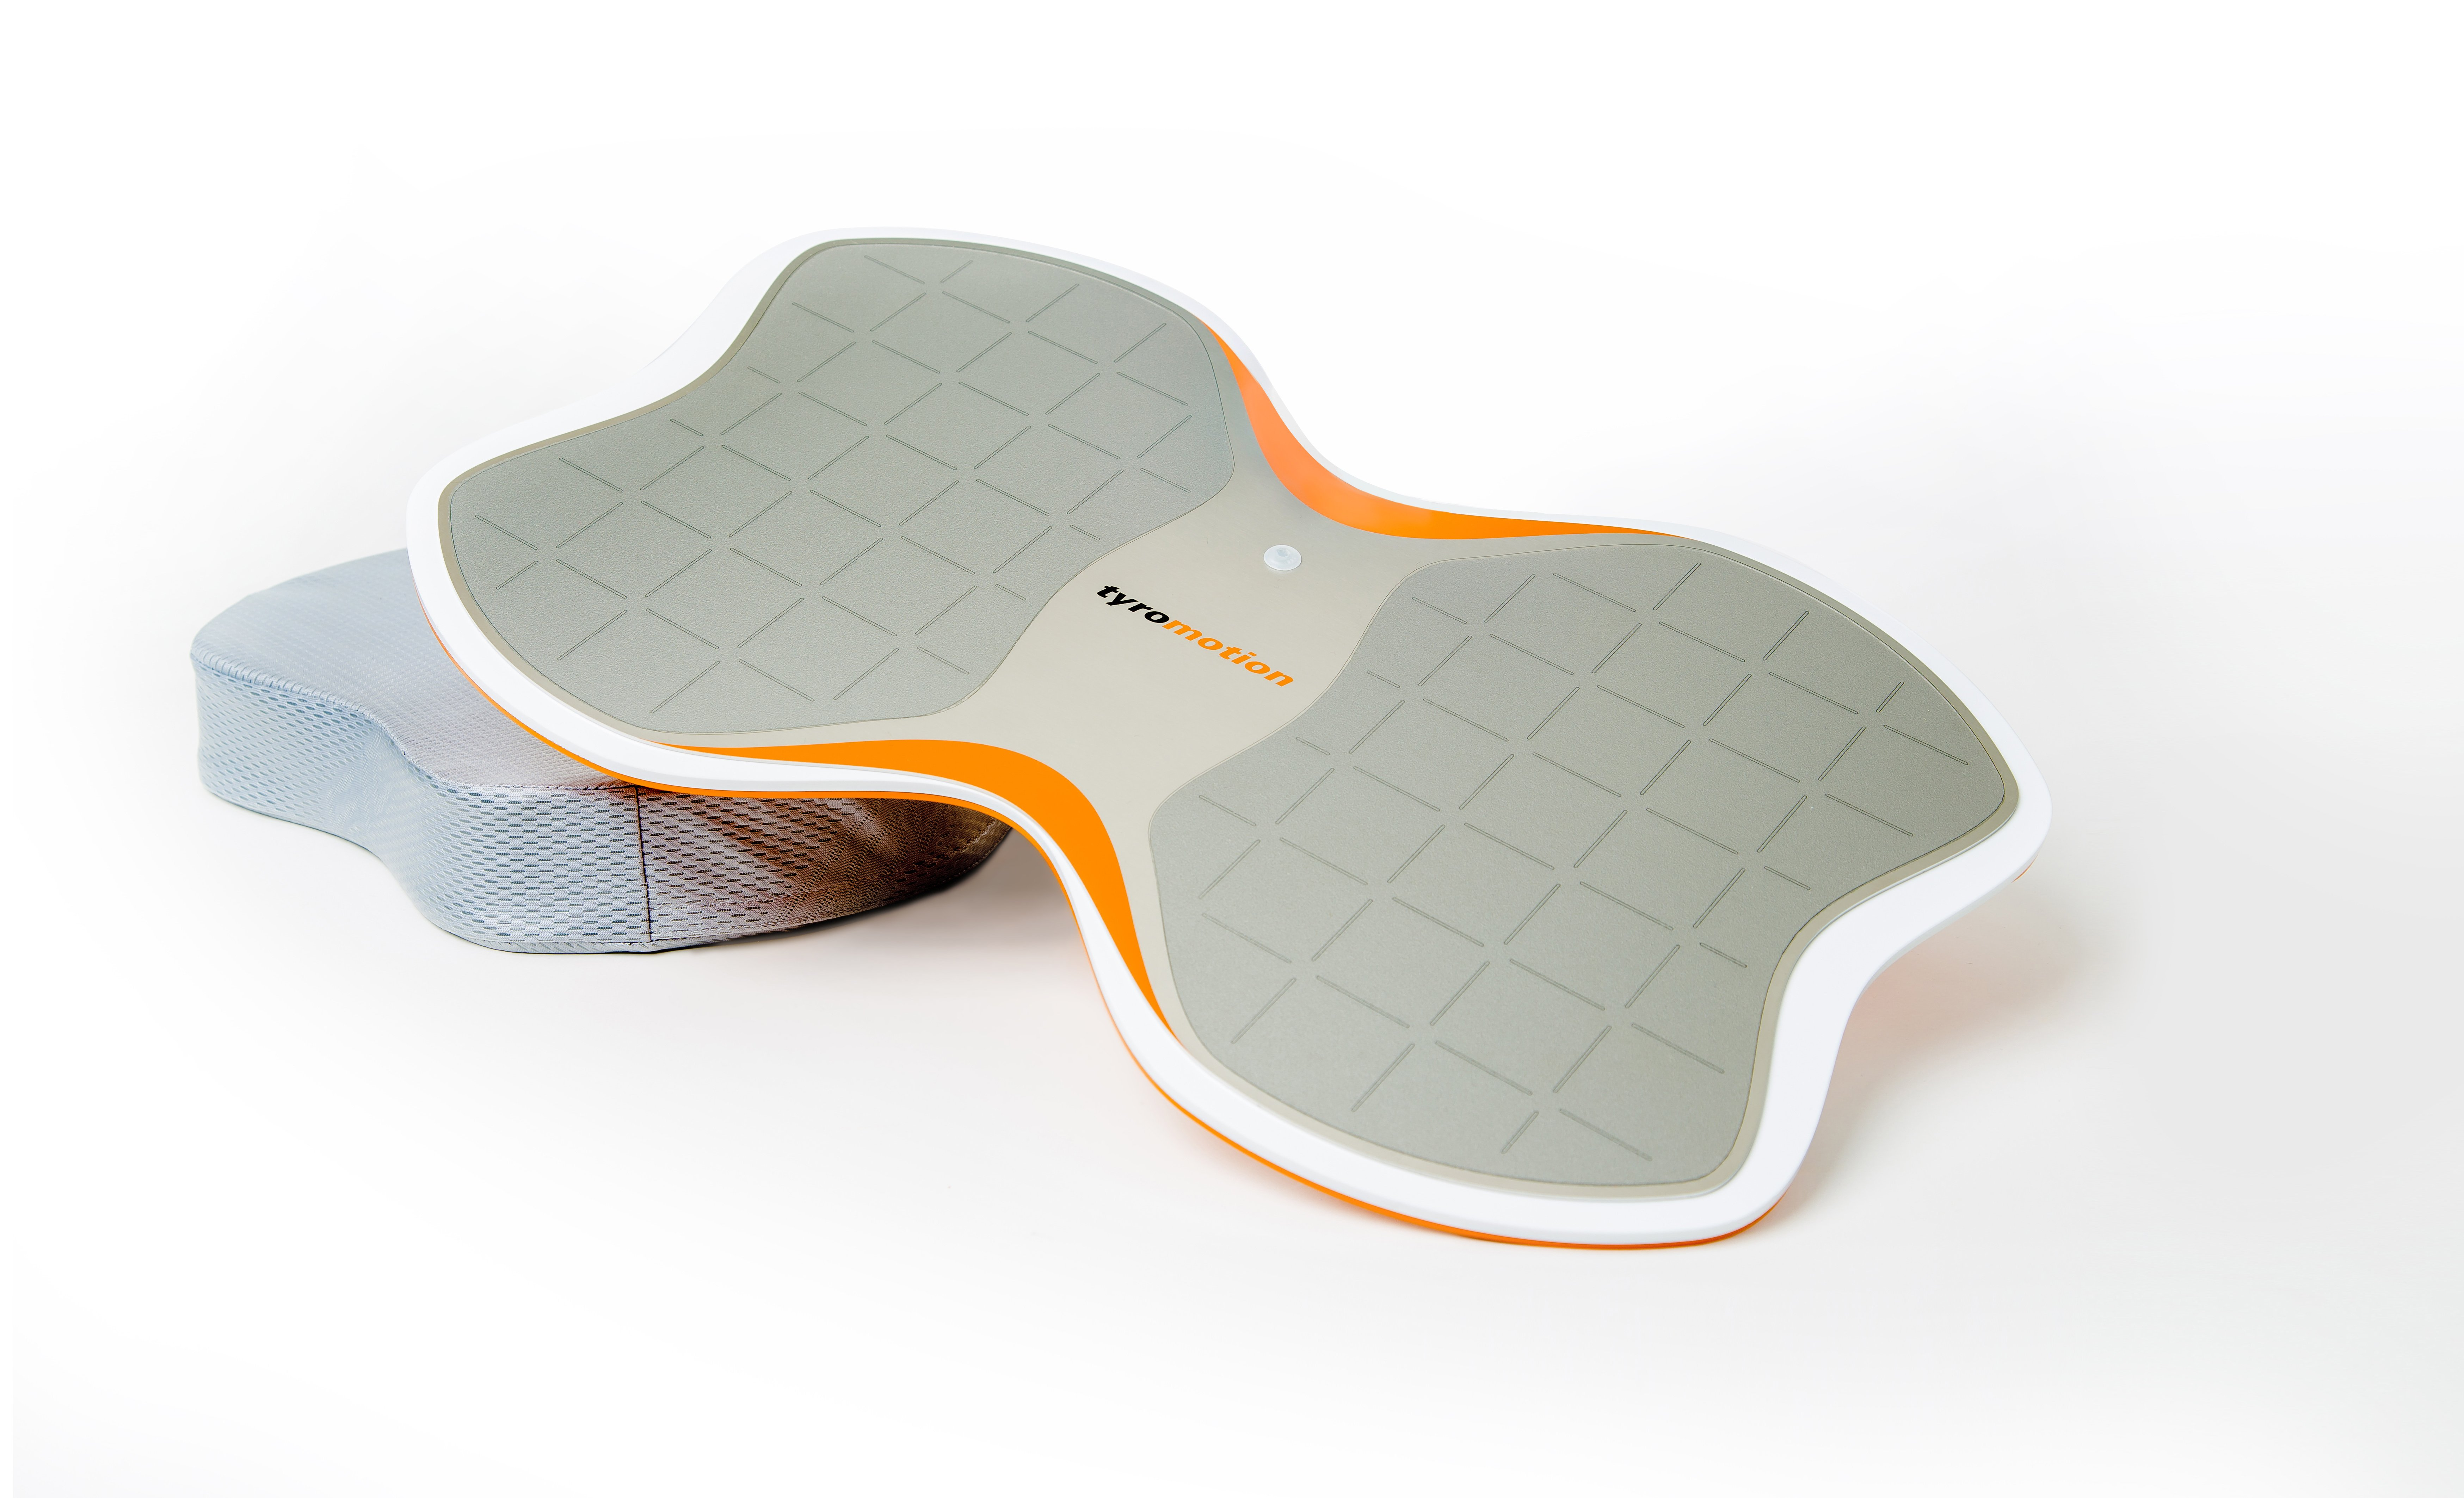 Tymo Therapy Board - sensor based rehabilitation device